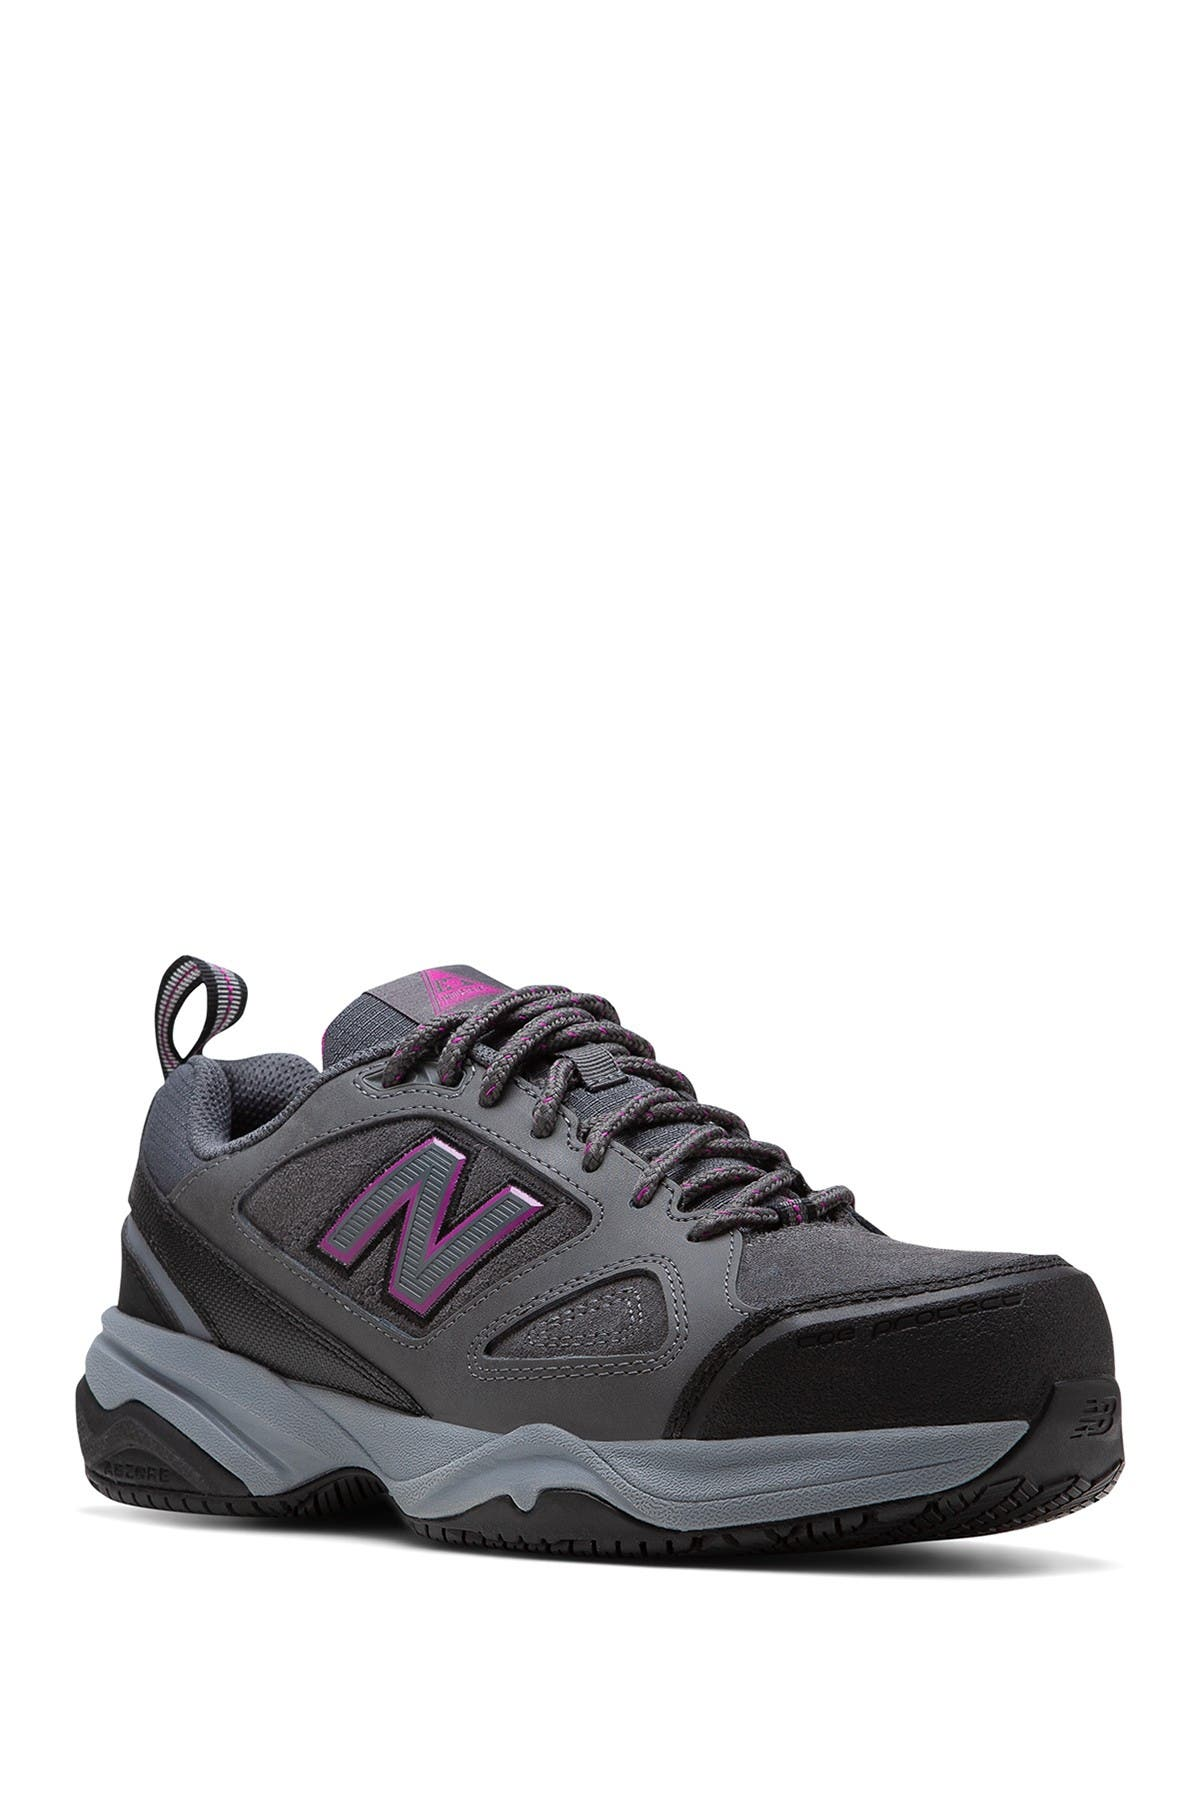 Image of New Balance 627 V2 Industrial Sneaker - Wide Width Available